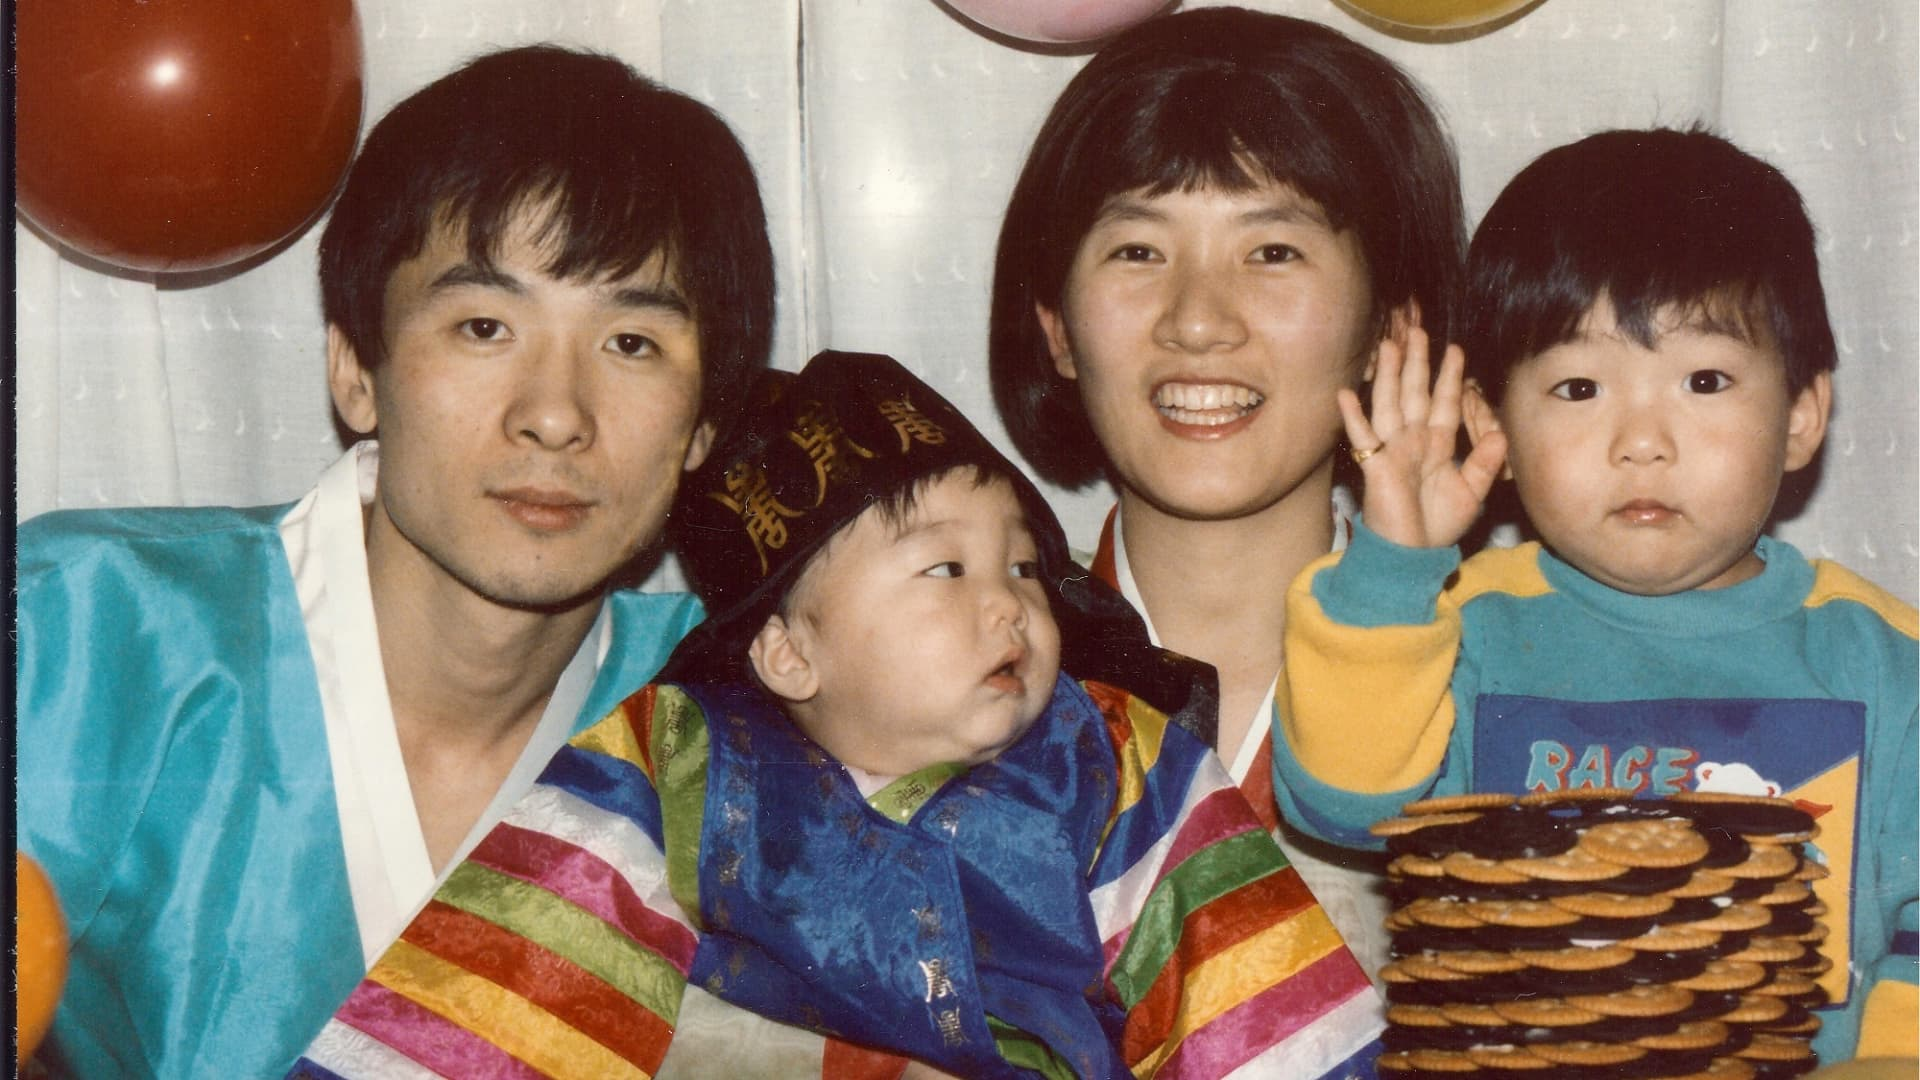 Jason grew up in Kansas with his older brother, Eddie, and parents, Chi Hyun and Yugyung.